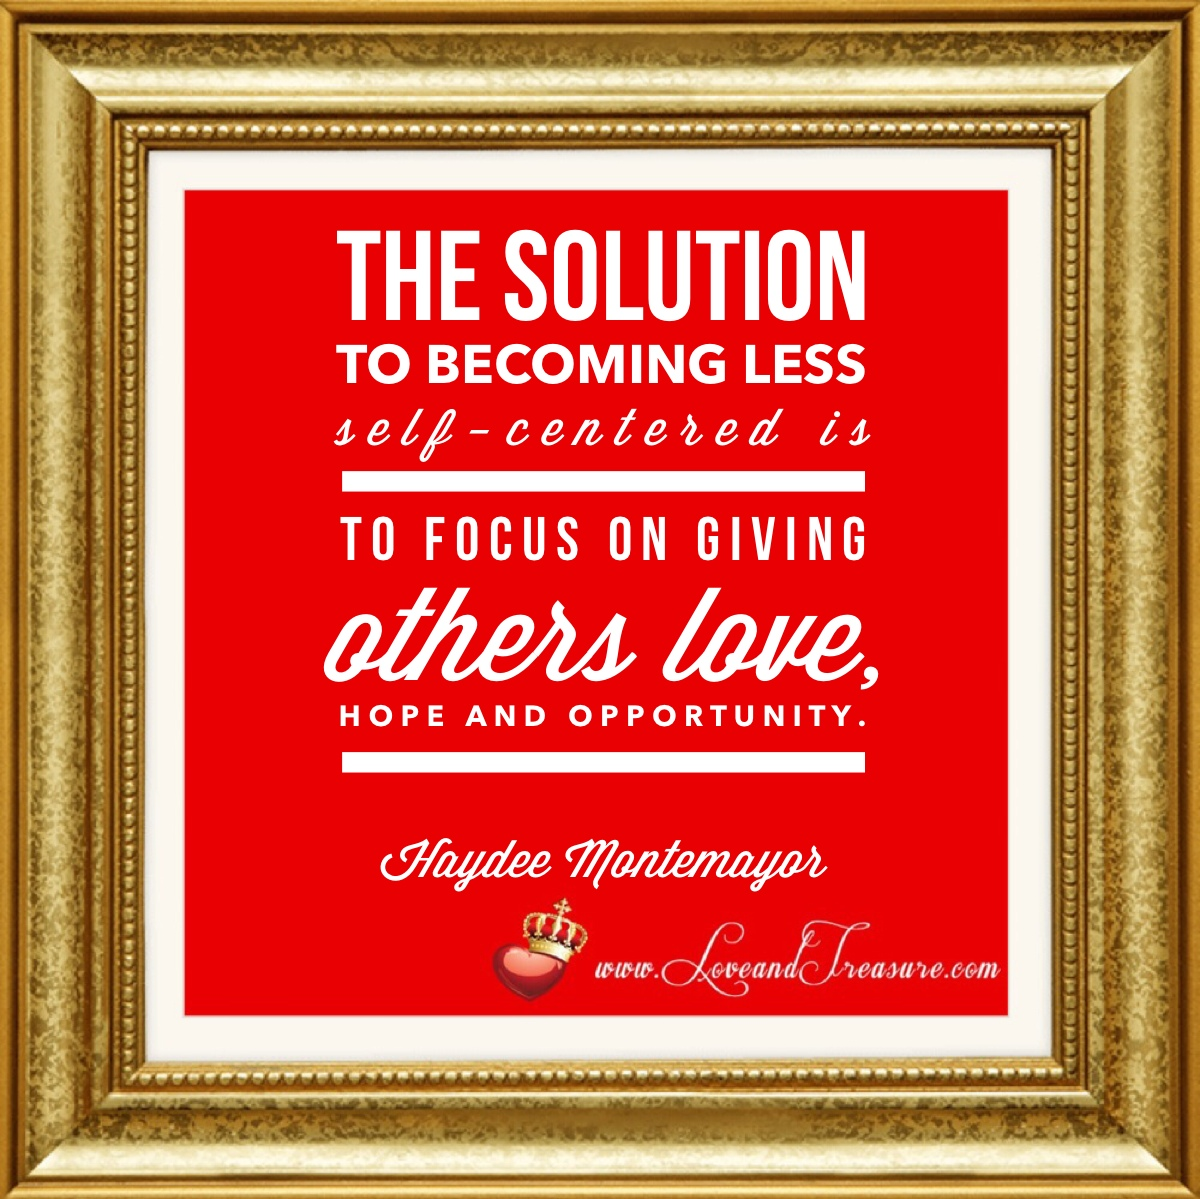 https://loveandtreasure.com/wp-content/uploads/2014/10/The-Solution-to-Becoming-Less-self-centered-is-to-focus-on-giving-others-love-hope-and-opportunity.jpg, the solution to becoming less self centered is to focus on giving others love, hope and opportunity, haydee montemayor, Why Aren't More People Focusing on Love? Answer: We're so self-centered!, love and treasure